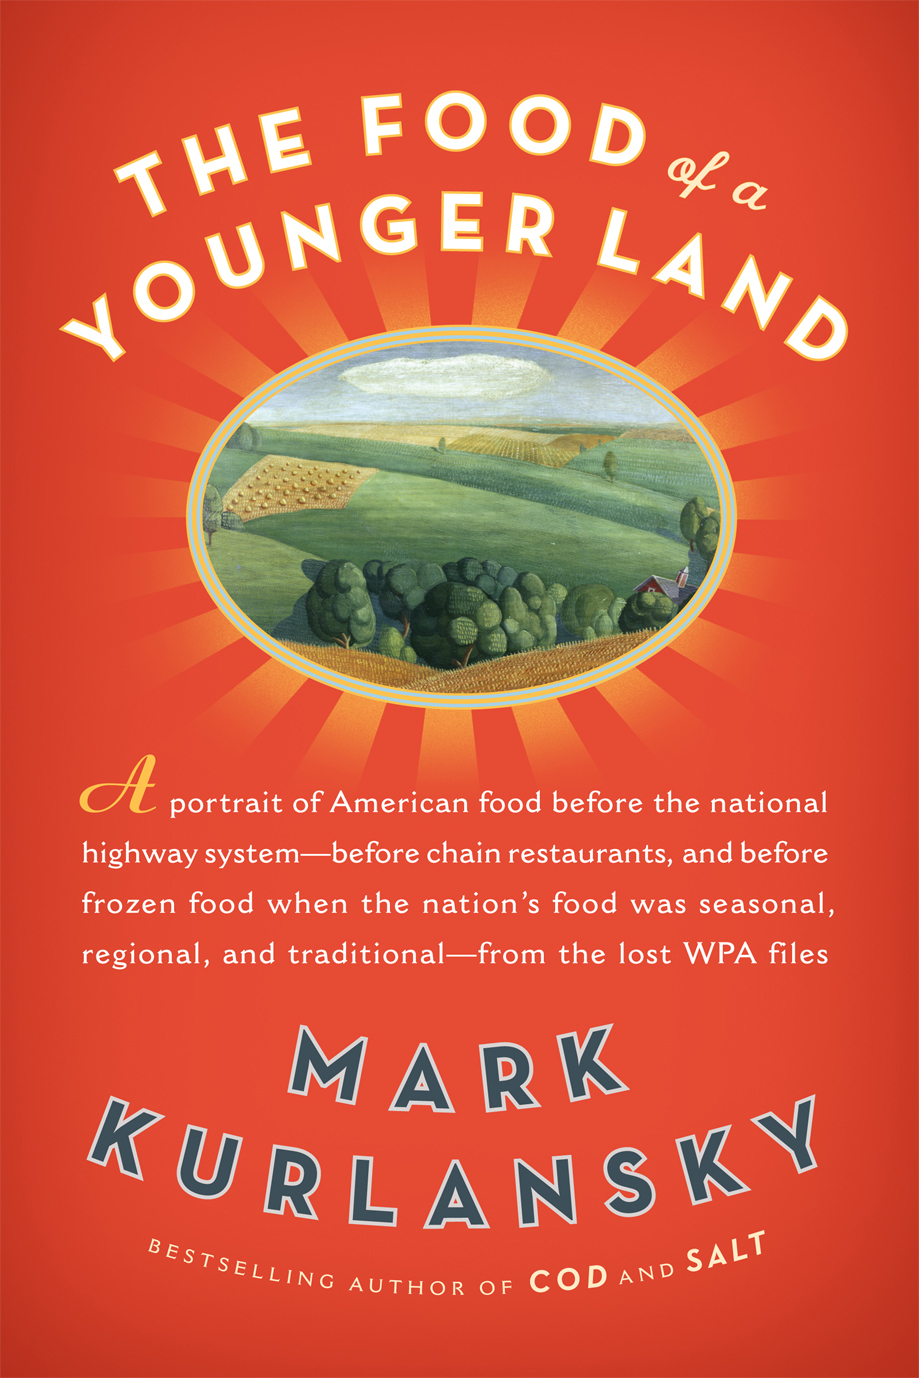 The Food of a Younger Land: A portrait of American food- before the national highway system, before chainrestaurants, and before frozen food, when the nation's foodwasseasonal,regional, and traditional- from the lost WPA files By: Mark Kurlansky